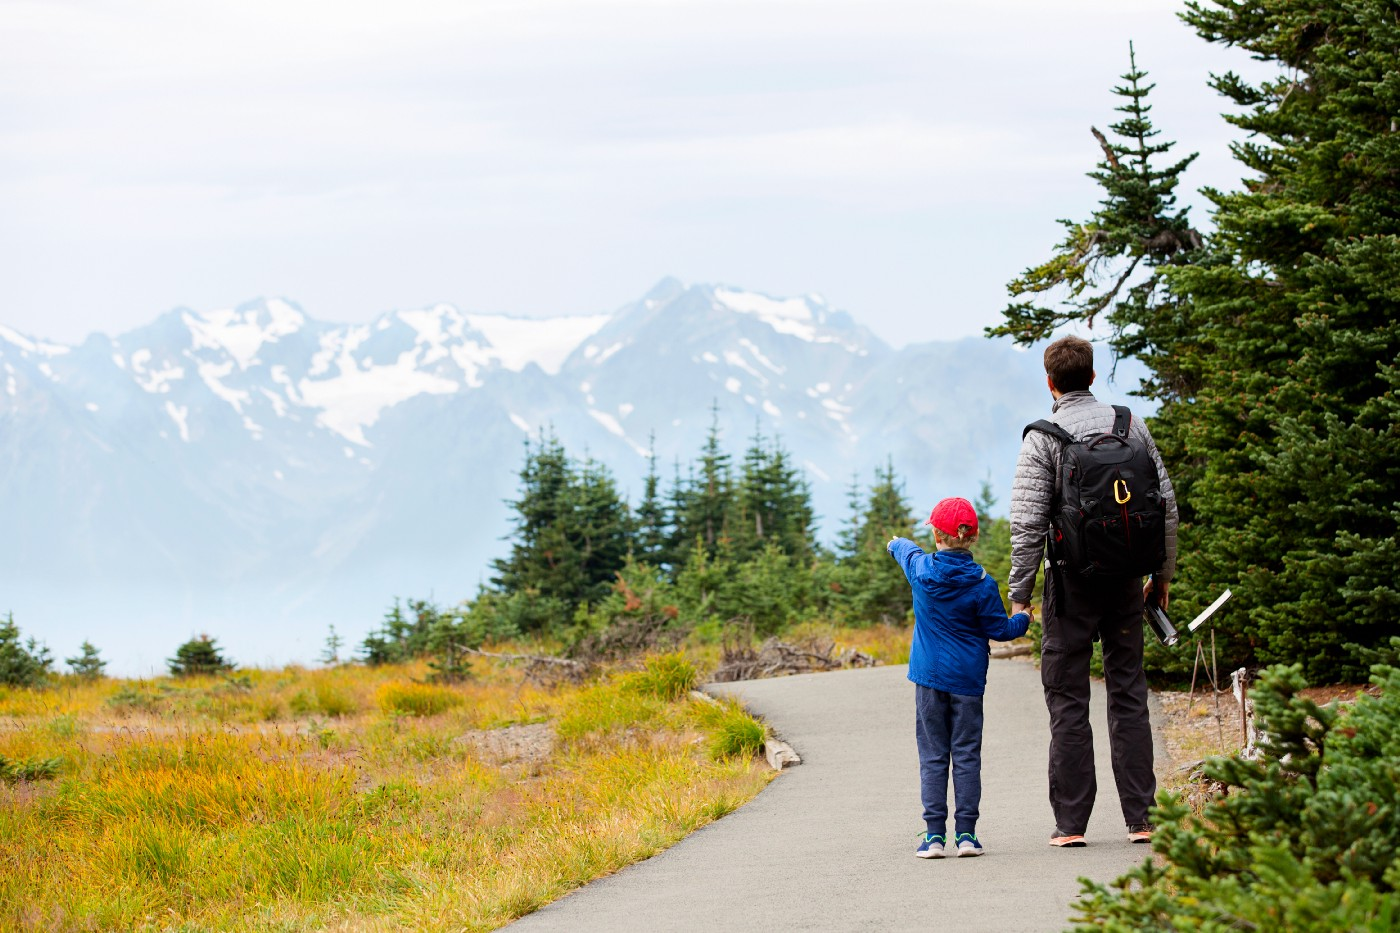 A boy points to snow-capped peaks in the distance.